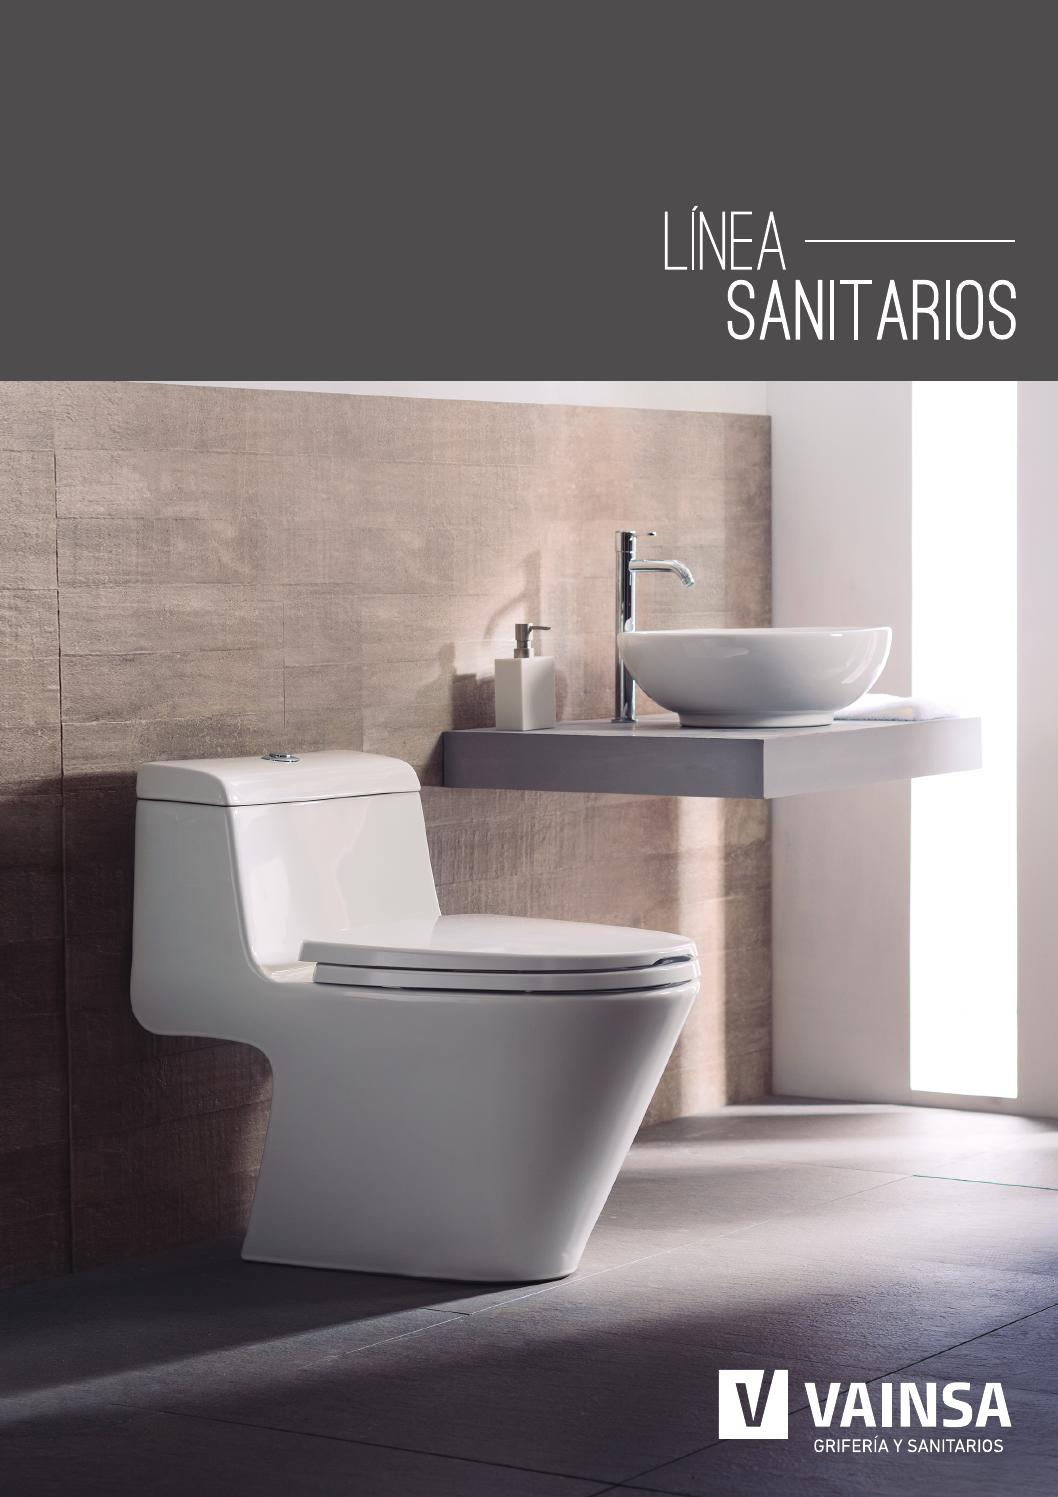 Catalogo sanitarios 2014 by vainsa grifer a y sanitarios for Capea sanitarios catalogo